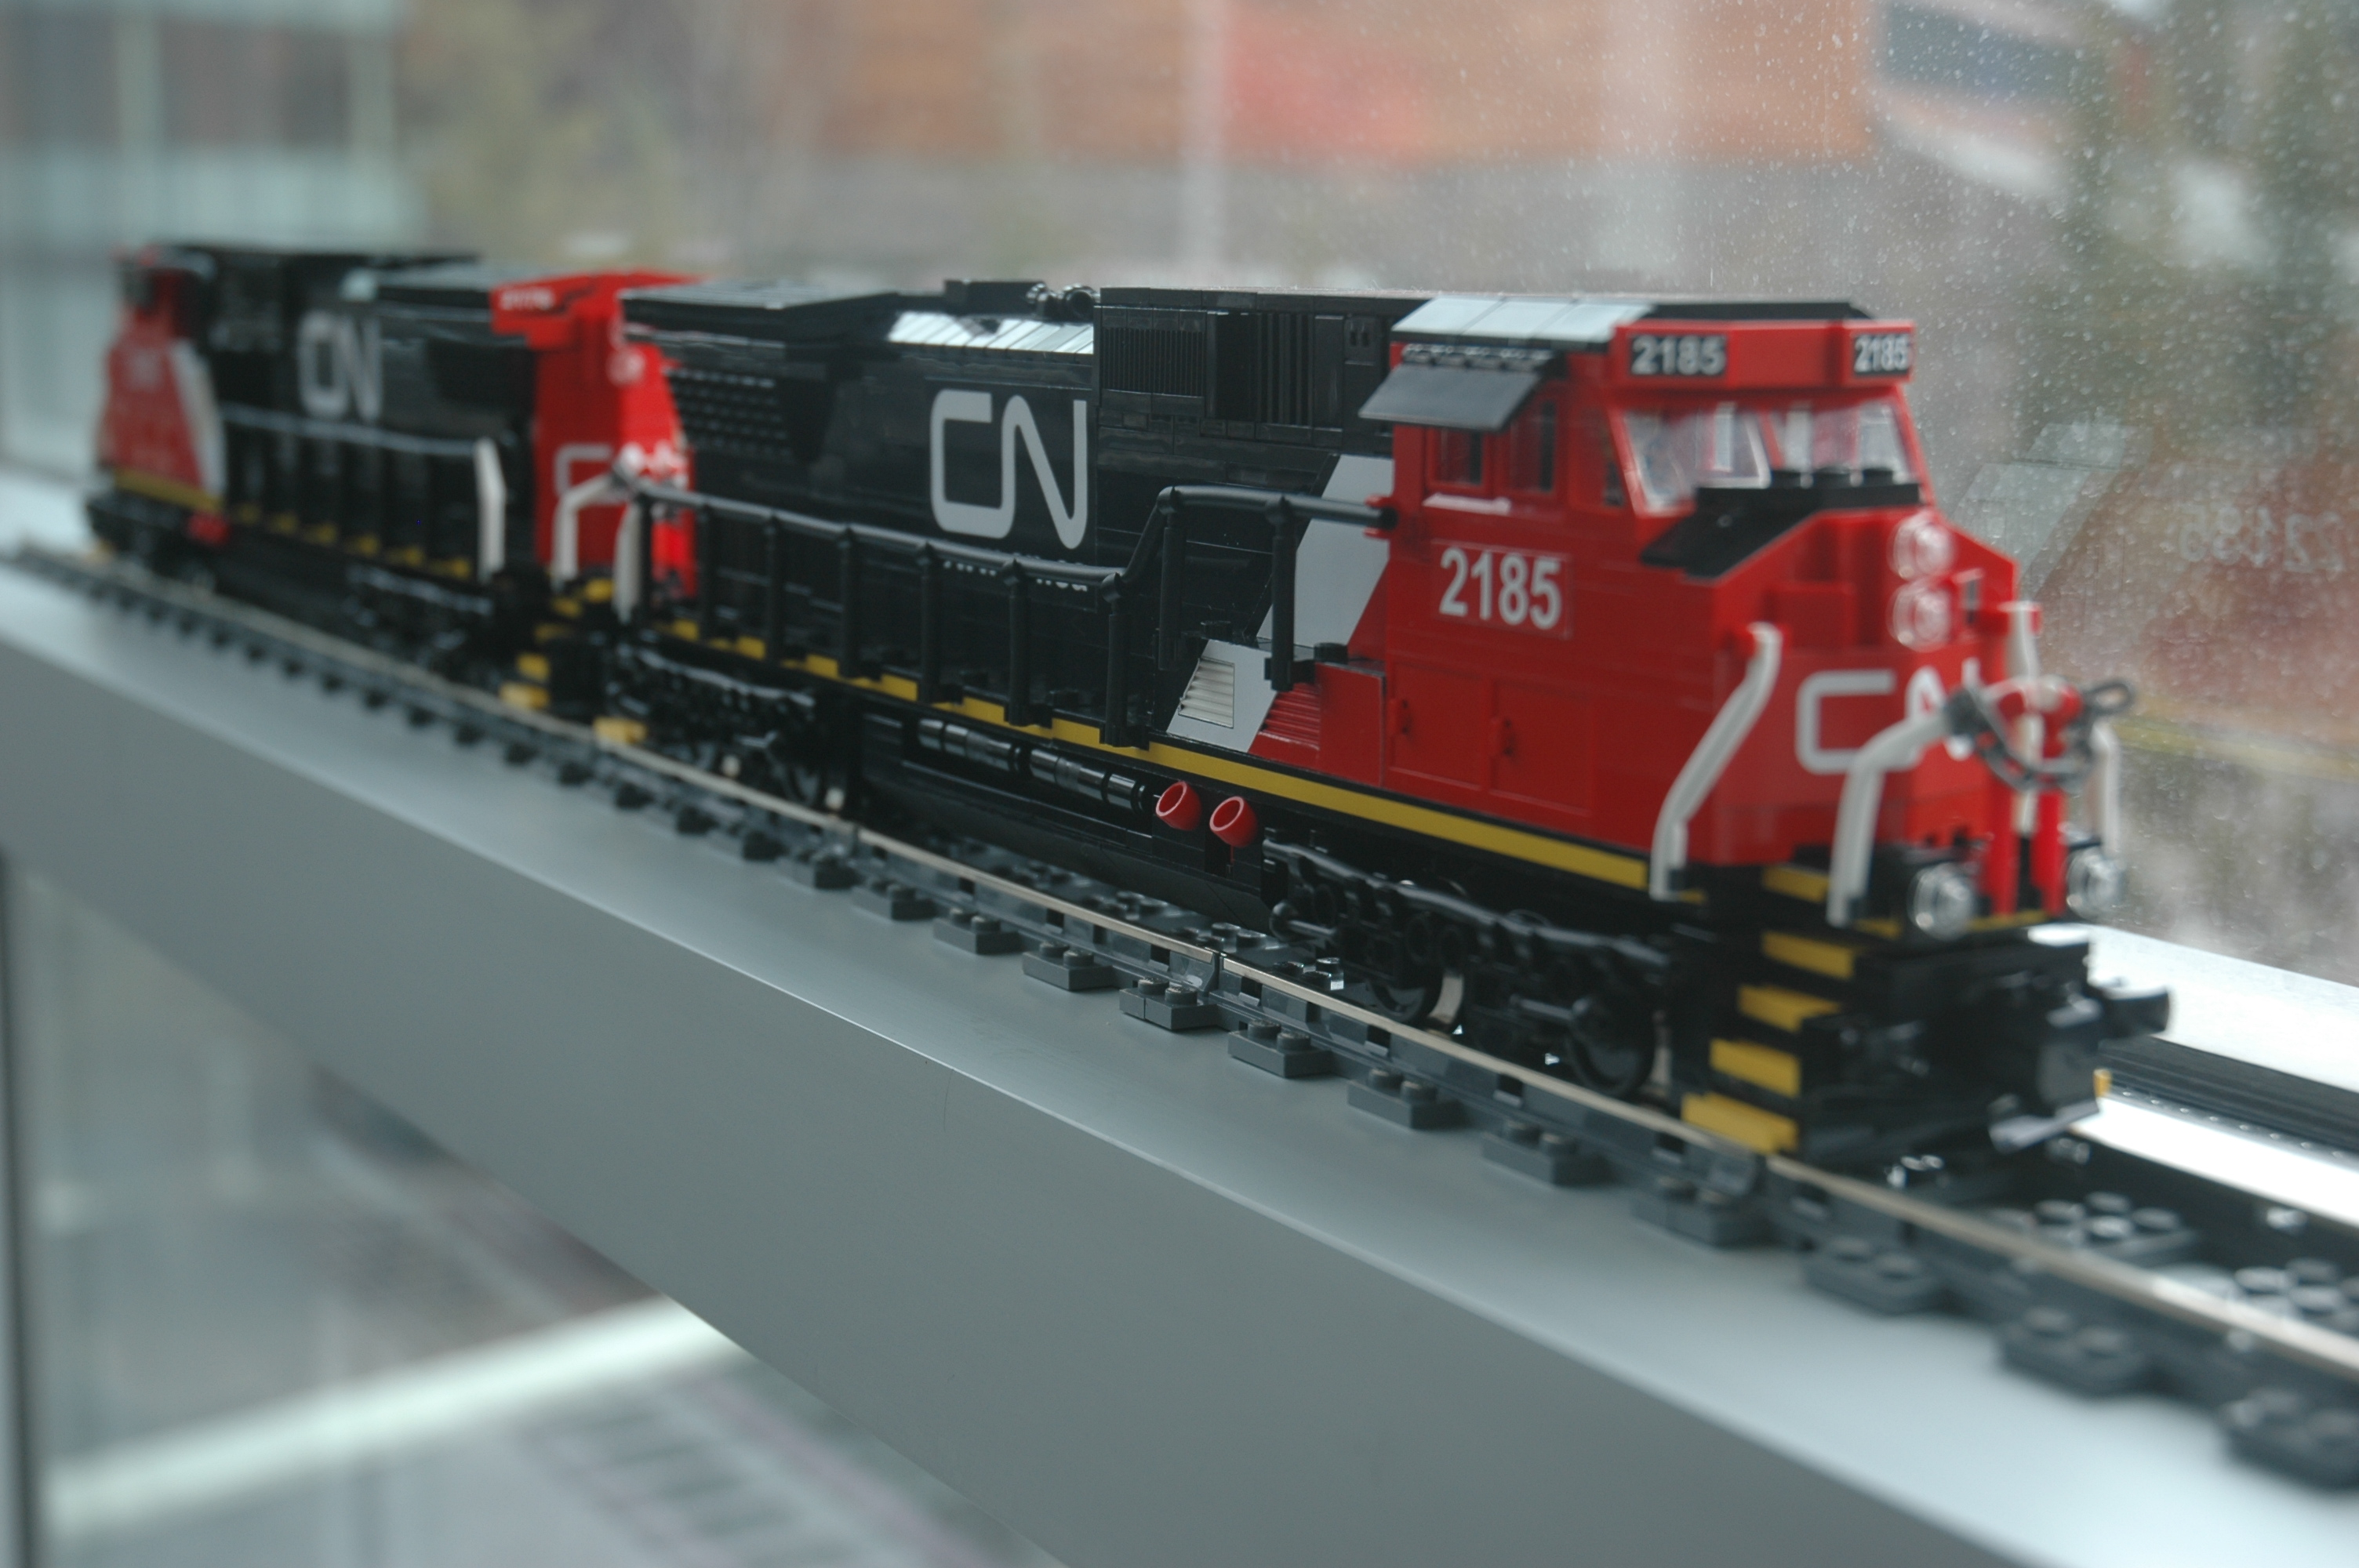 lego_cn_freight_engine_c40-8w_dash_8_main.jpg